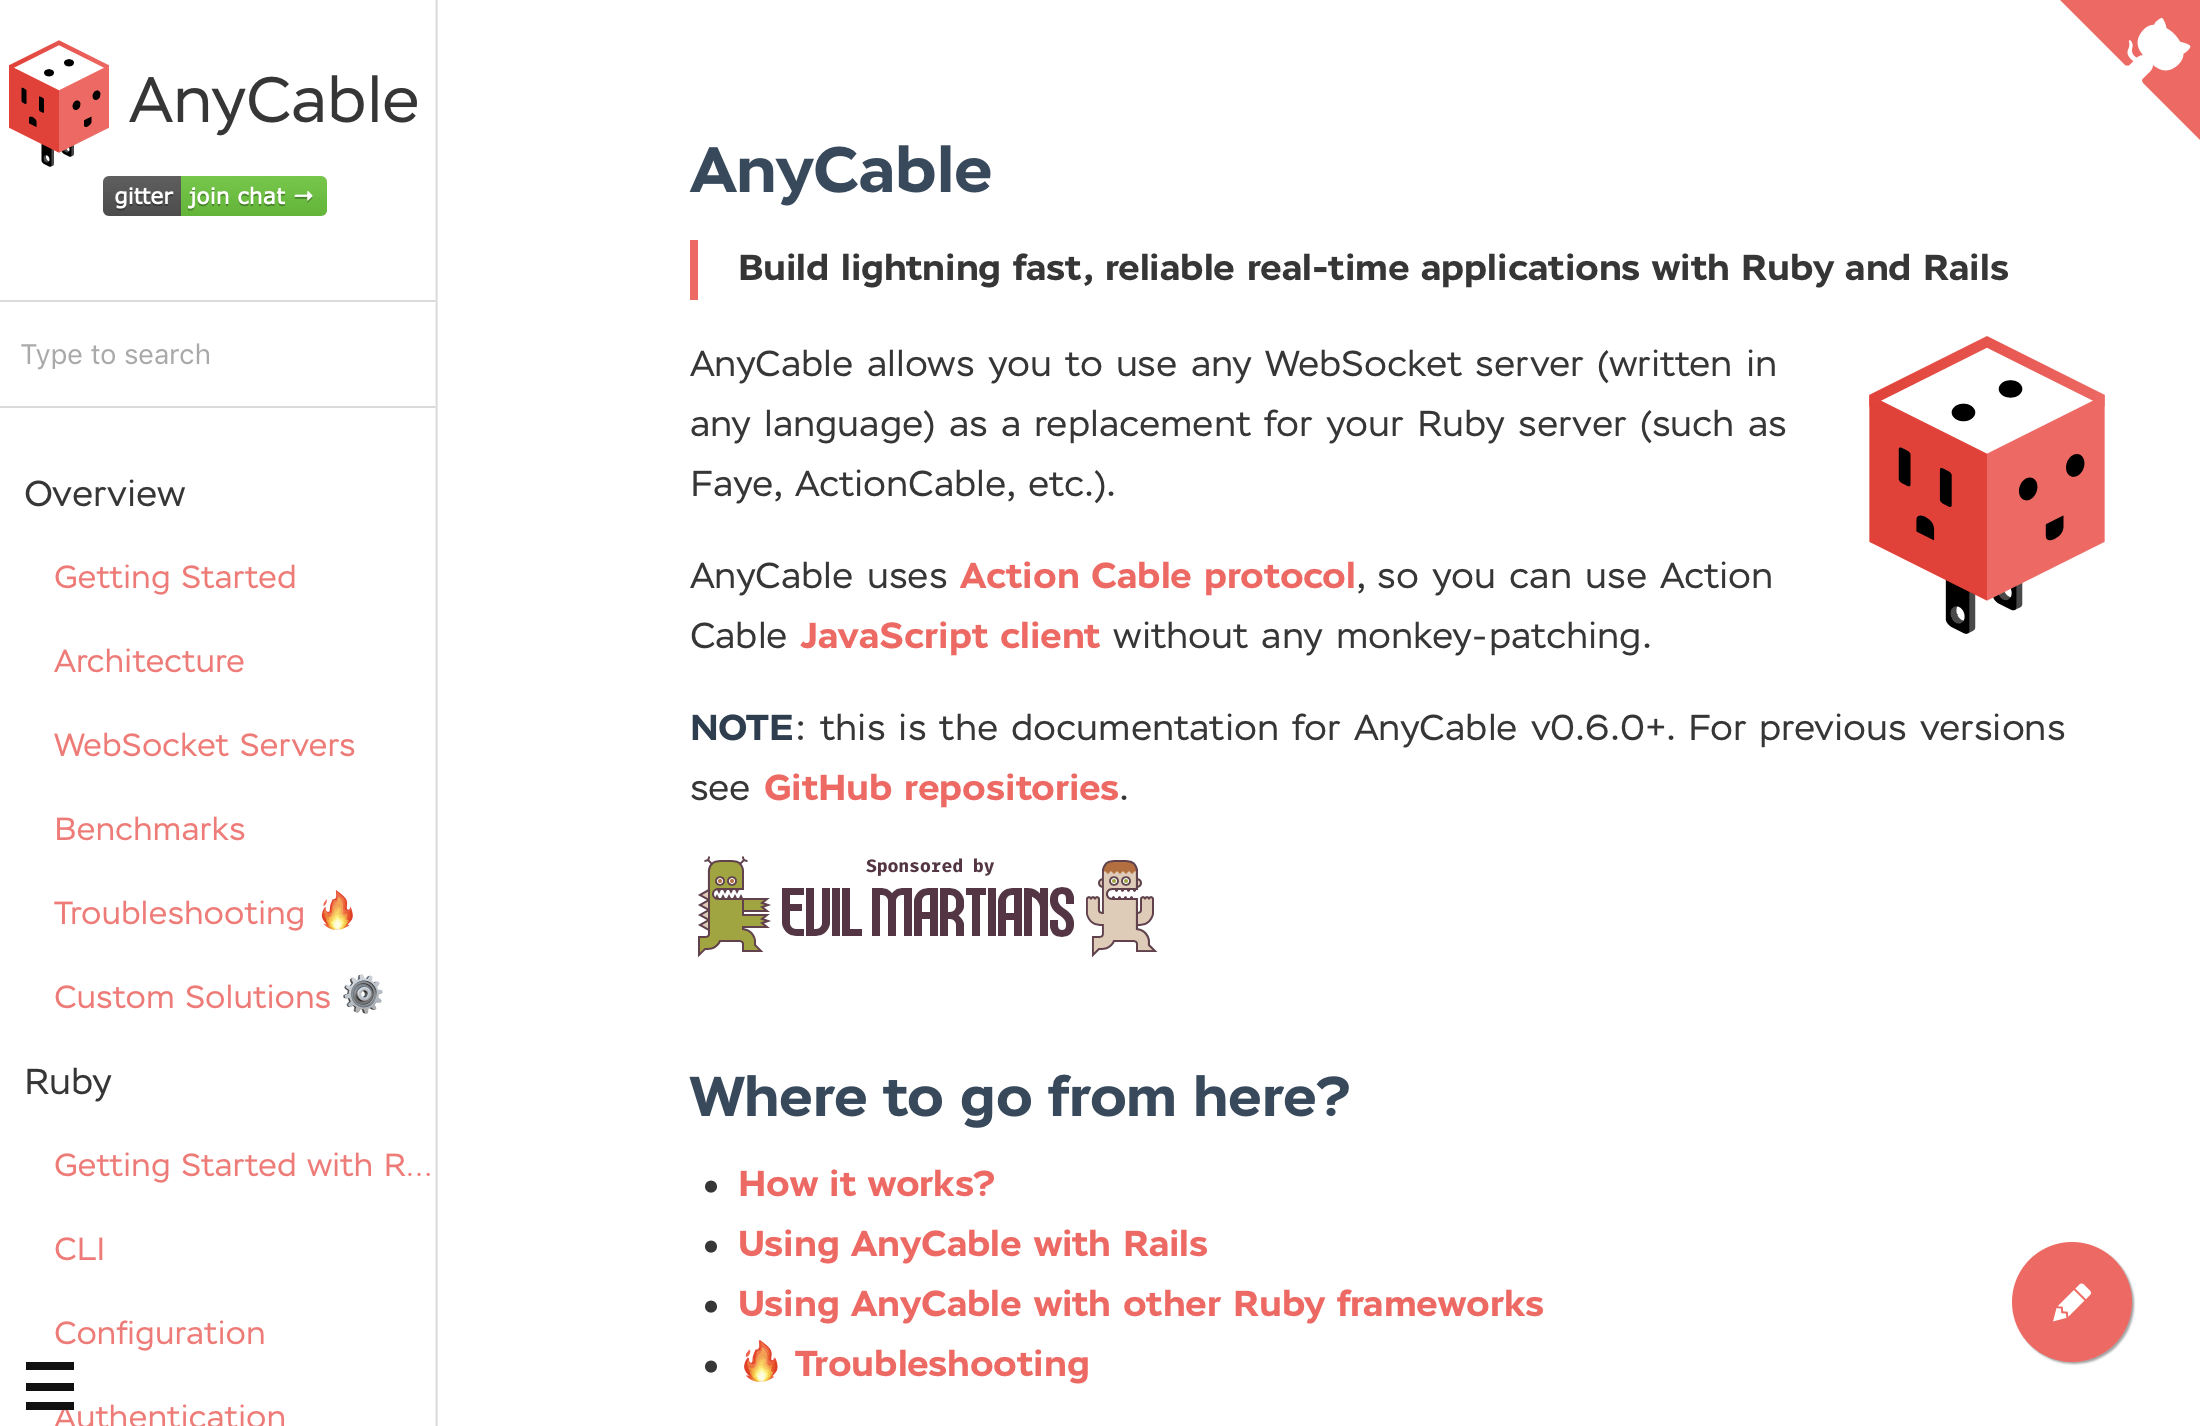 AnyCable documentation